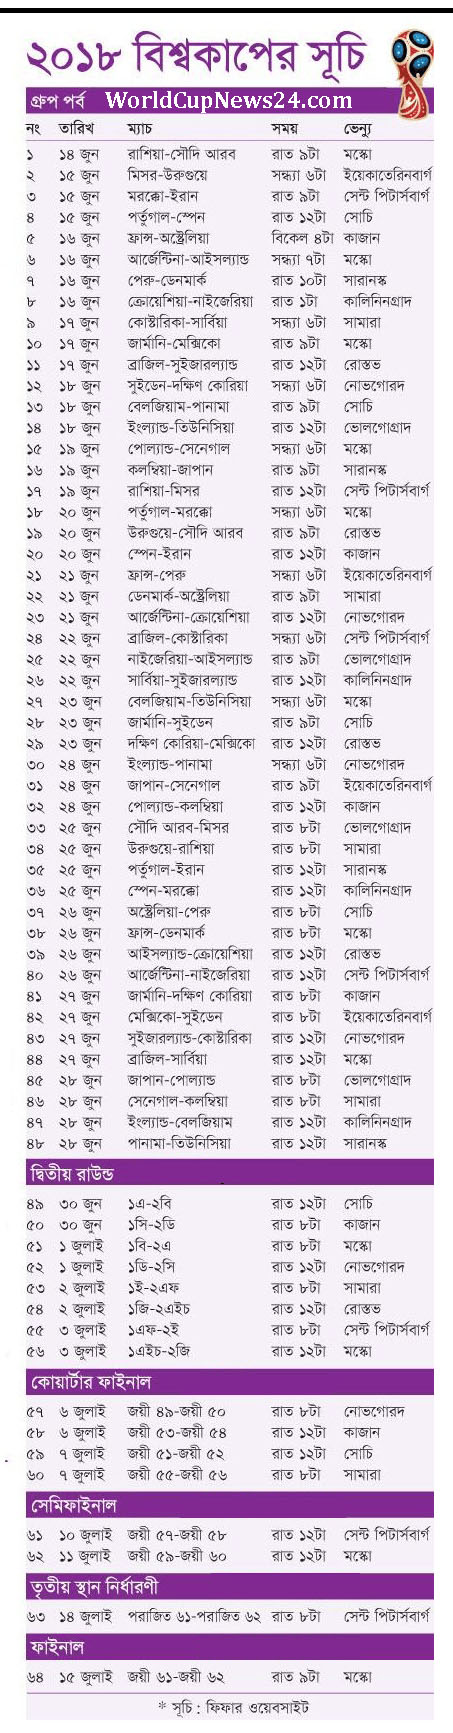 Russia FiFa World Cup 2018 Matches Schedule in Bangladesh Time calendar